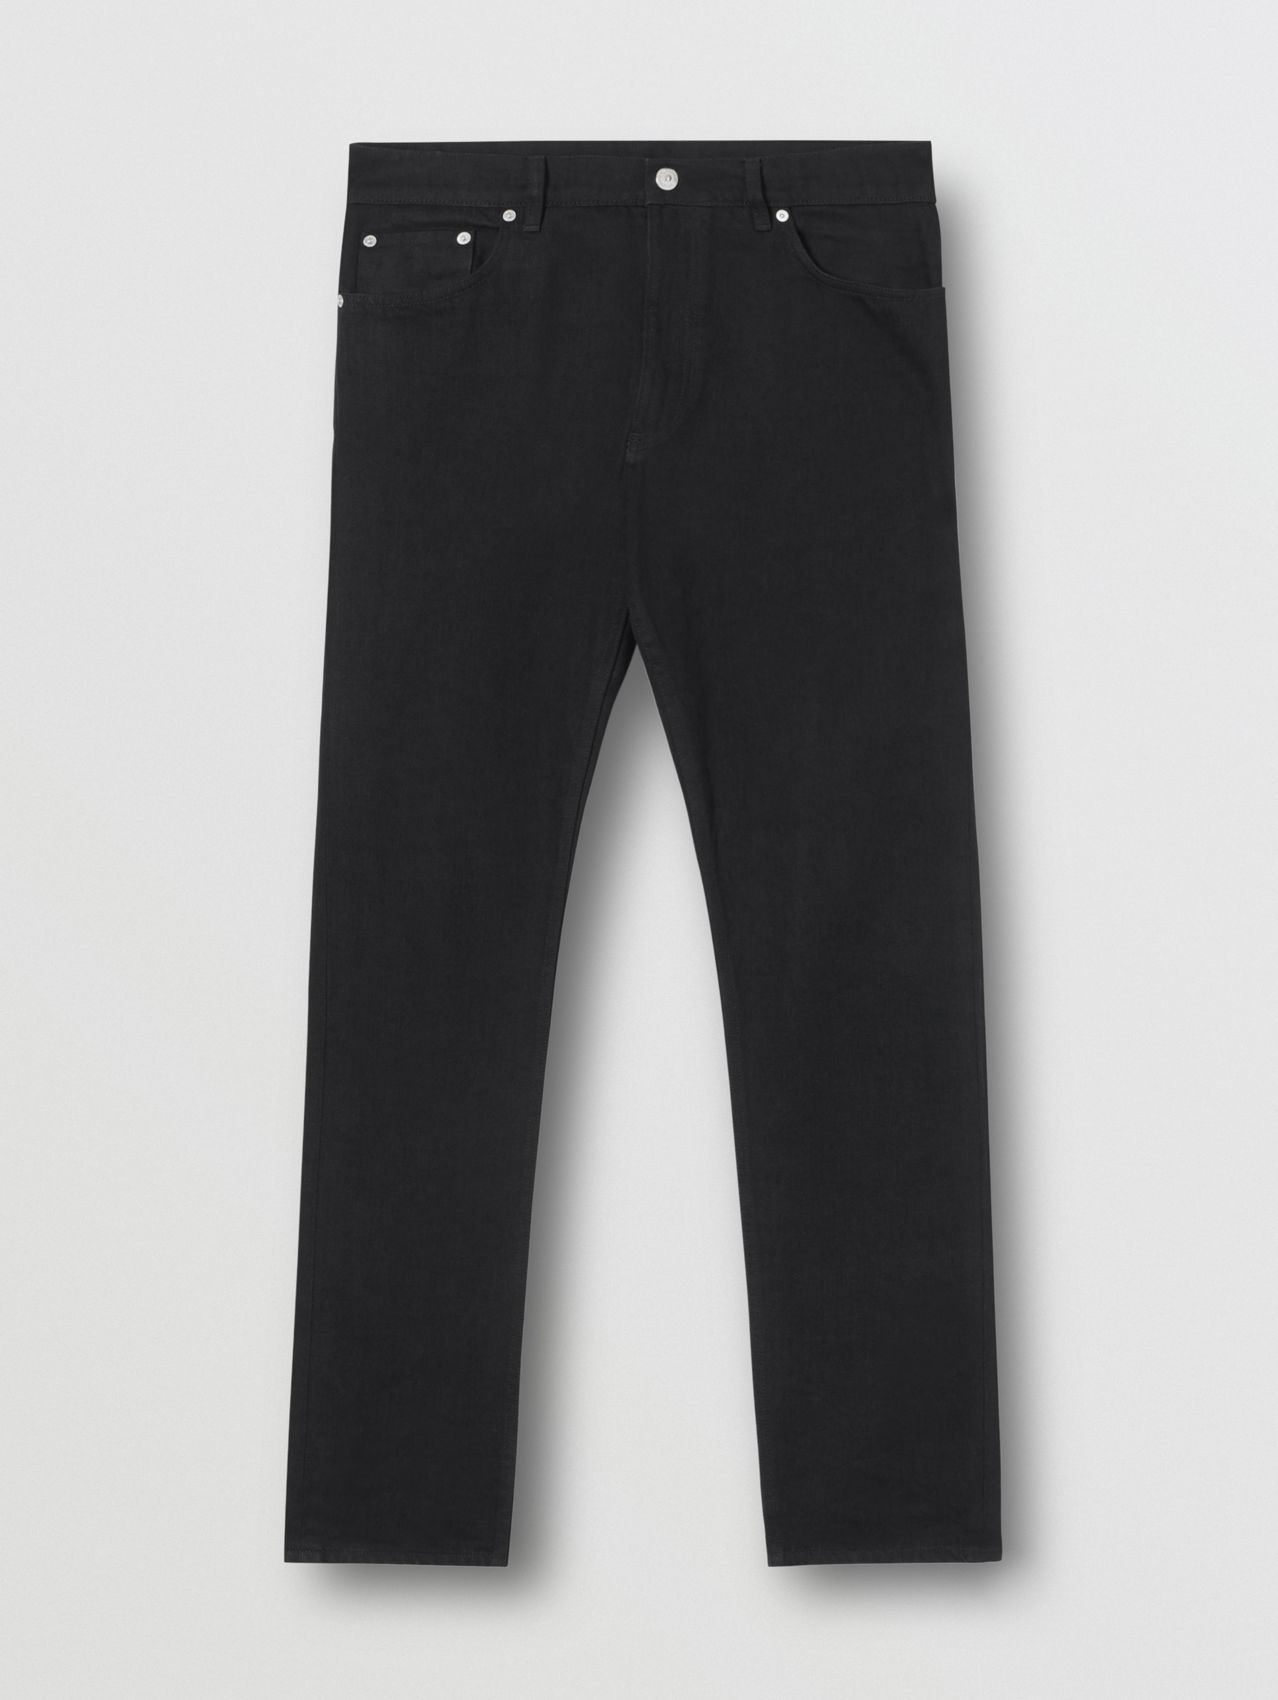 Slim Fit Japanese Denim Jeans (Black)